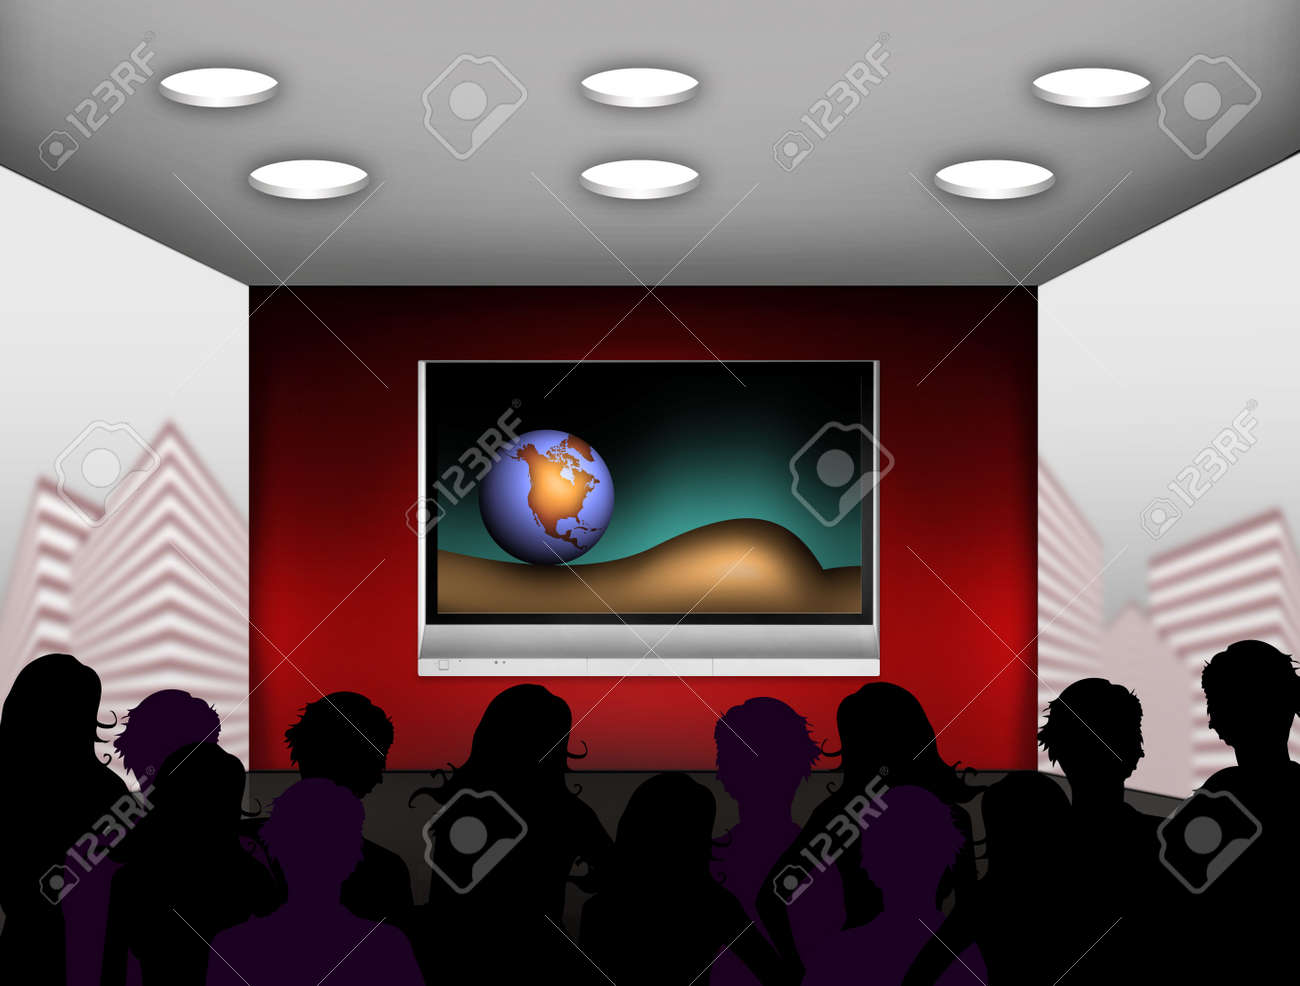 media room with plasma television on the wall Stock Photo - 4939036